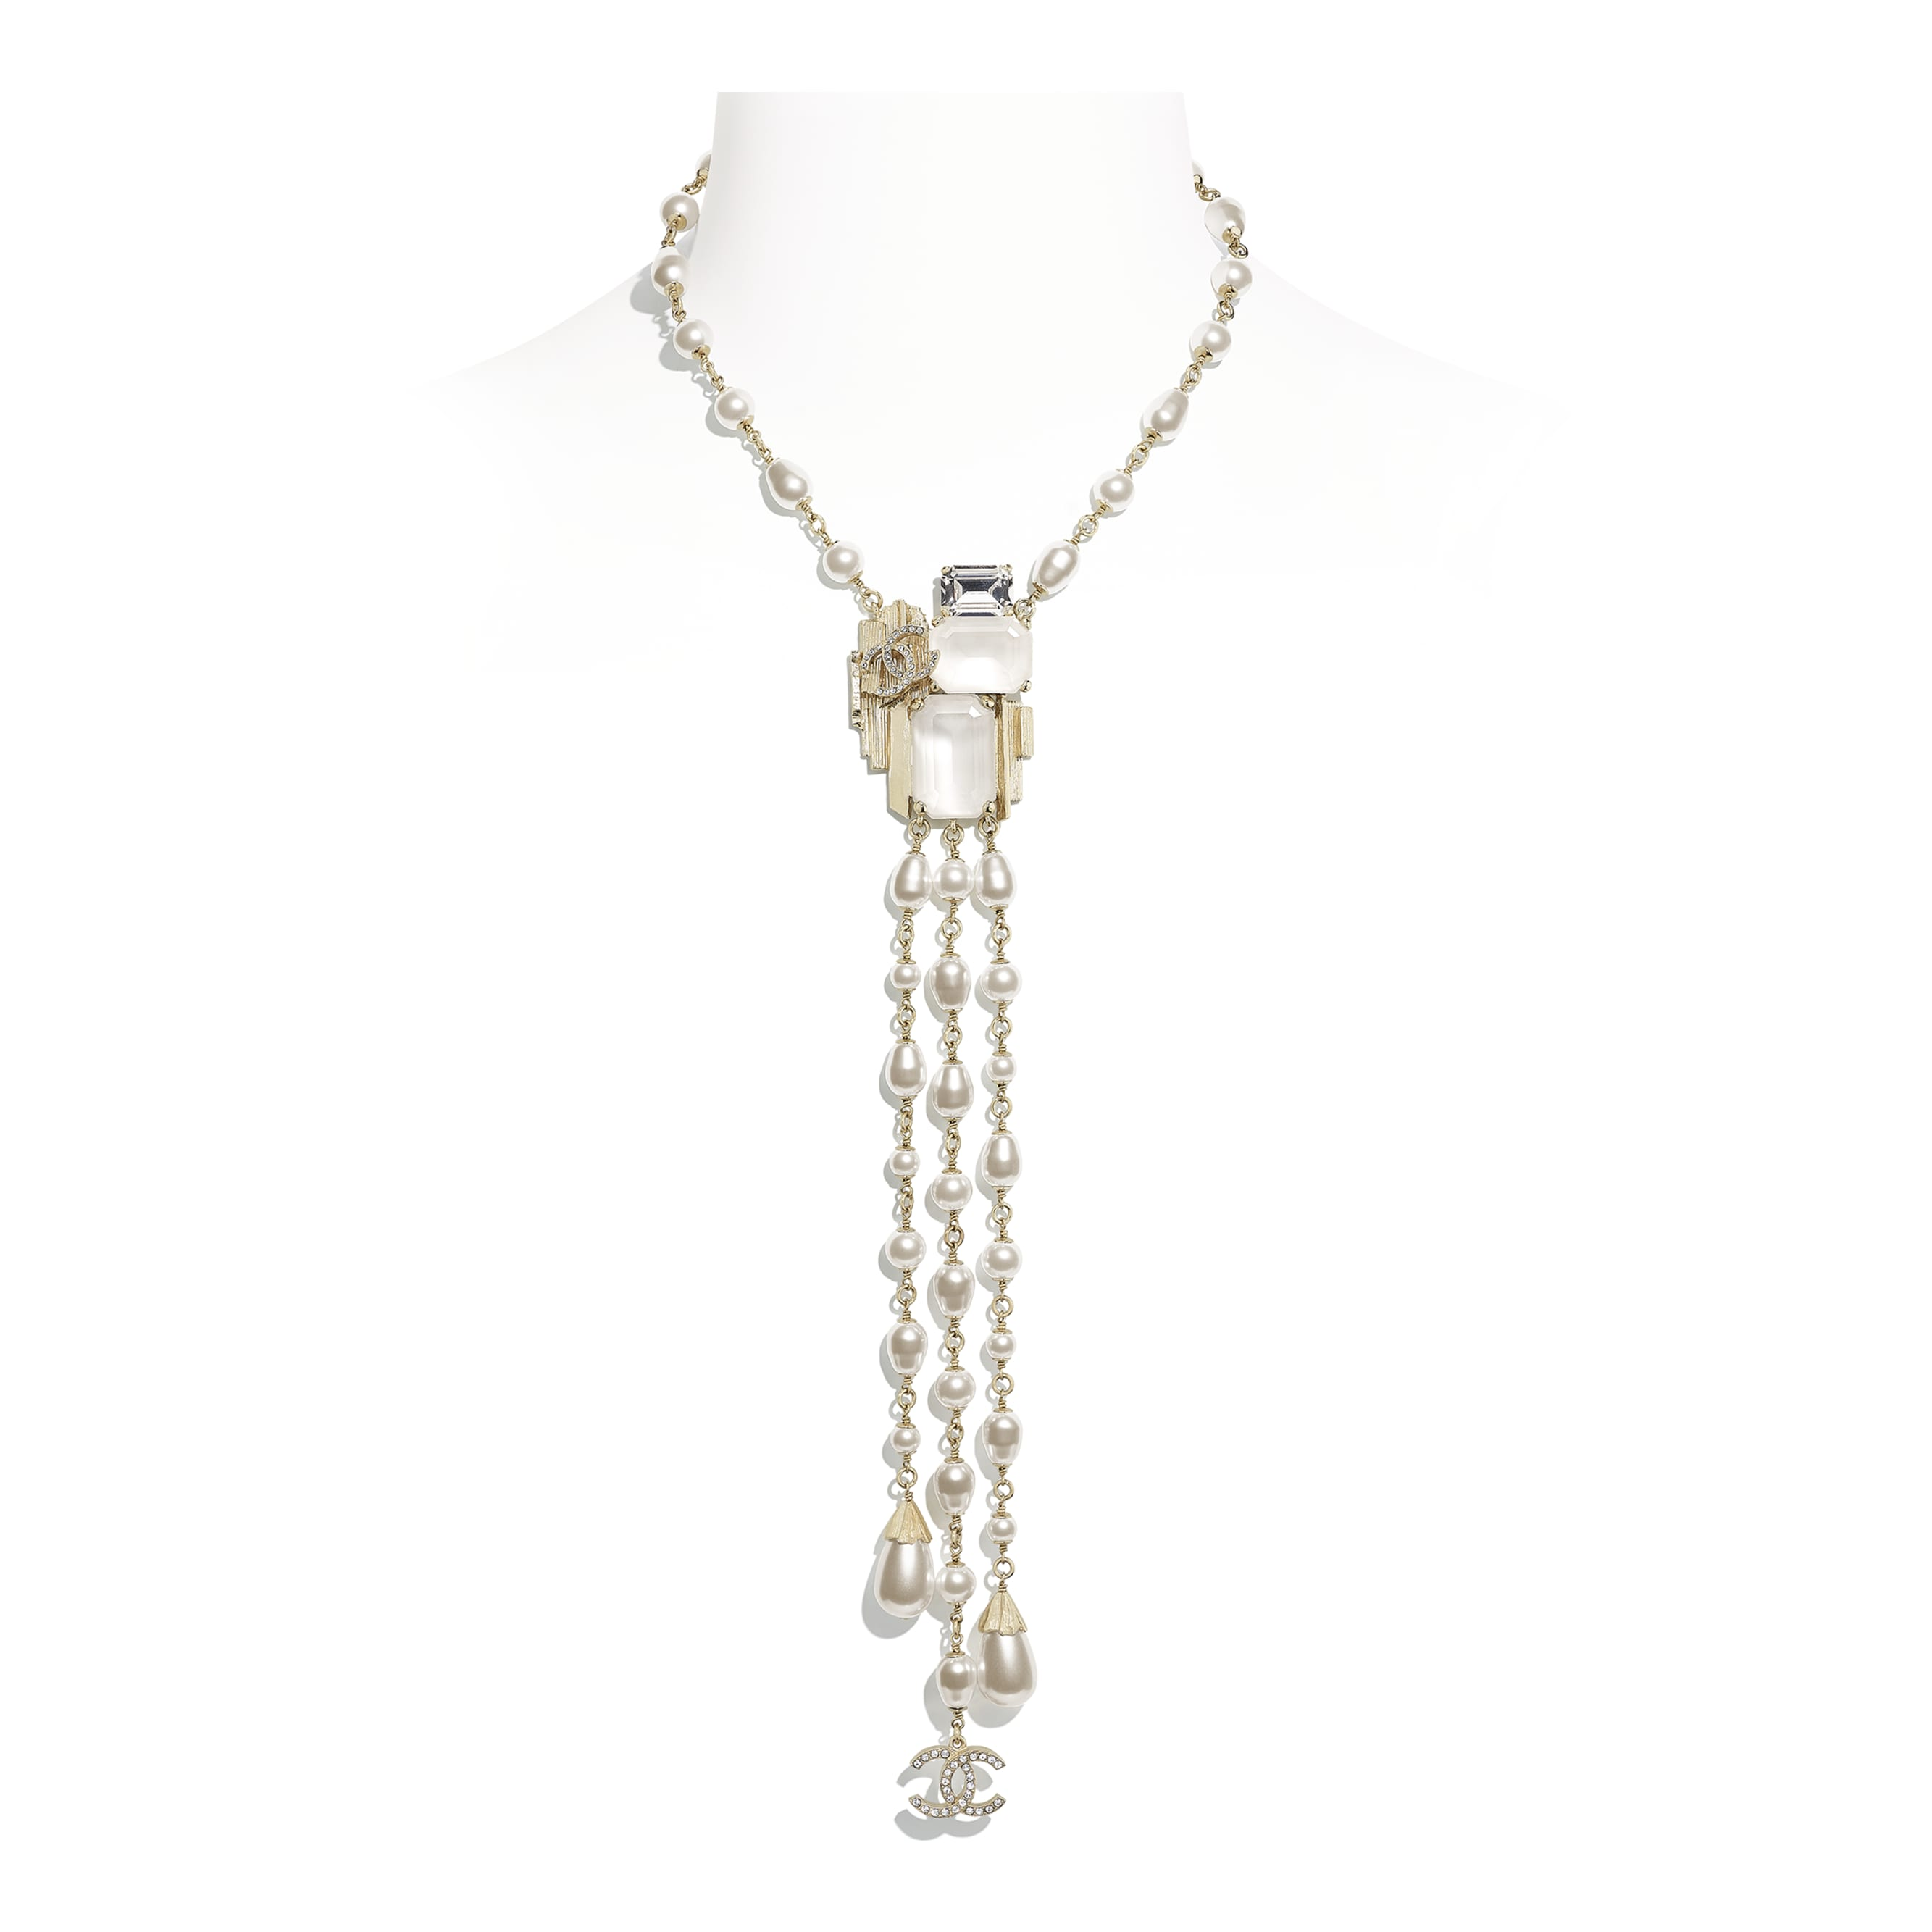 Necklace - Gold, Pearly White, White & Crystal - Metal, Glass Pearls, Imitation Pearls & Diamanté - CHANEL - Default view - see standard sized version